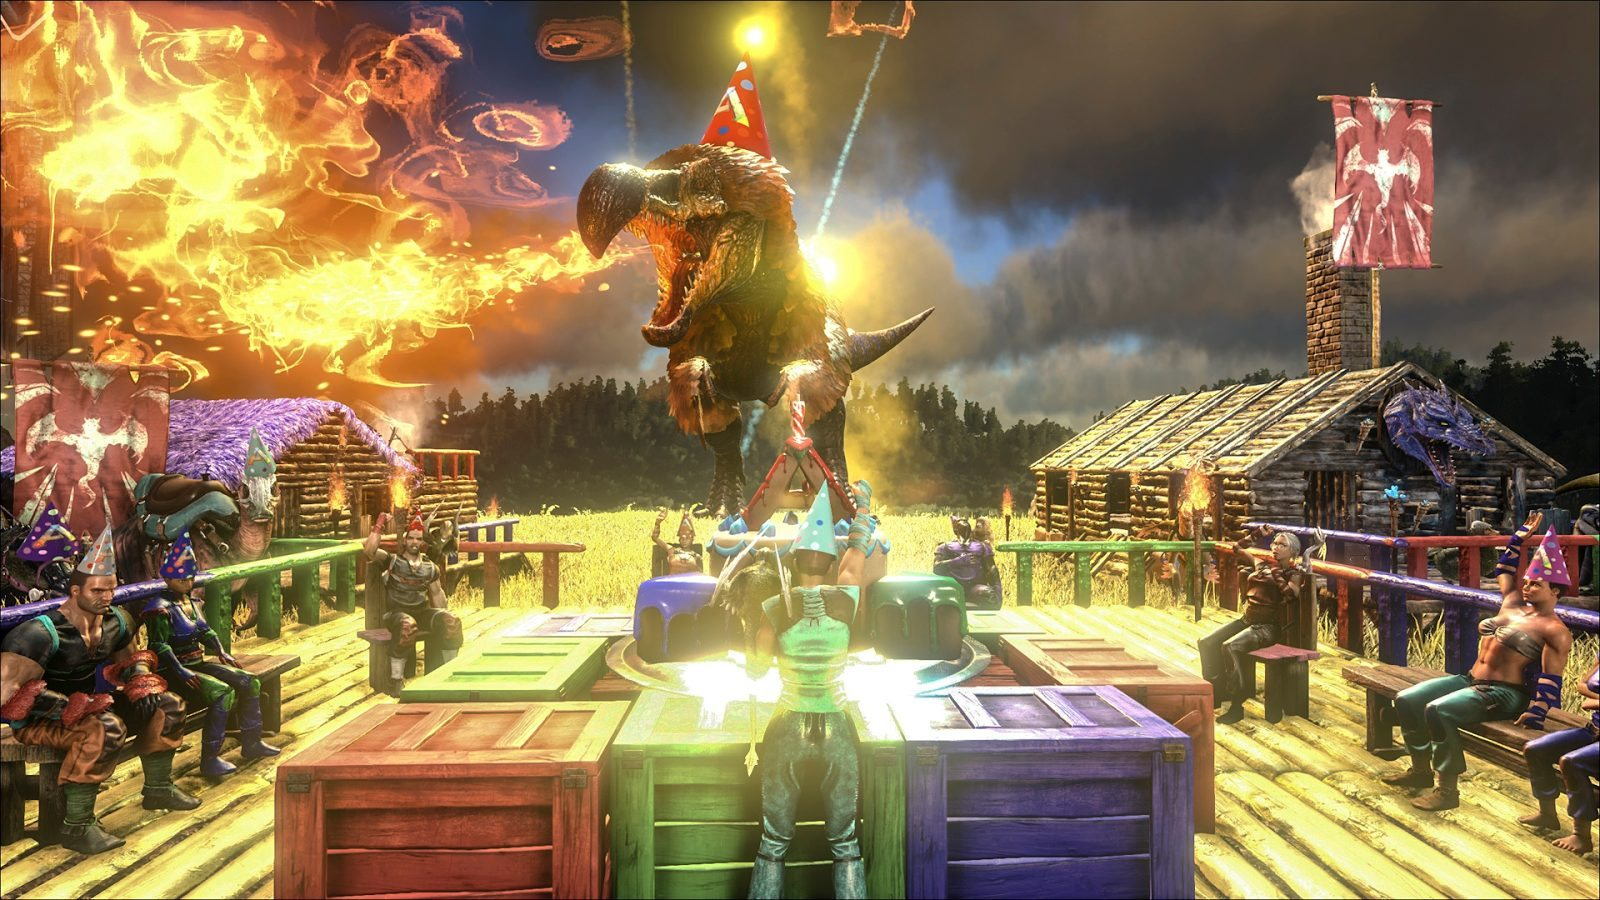 ARK: Survival Evolved First B'day Event Delivers Cake & Dragon Boss Arena